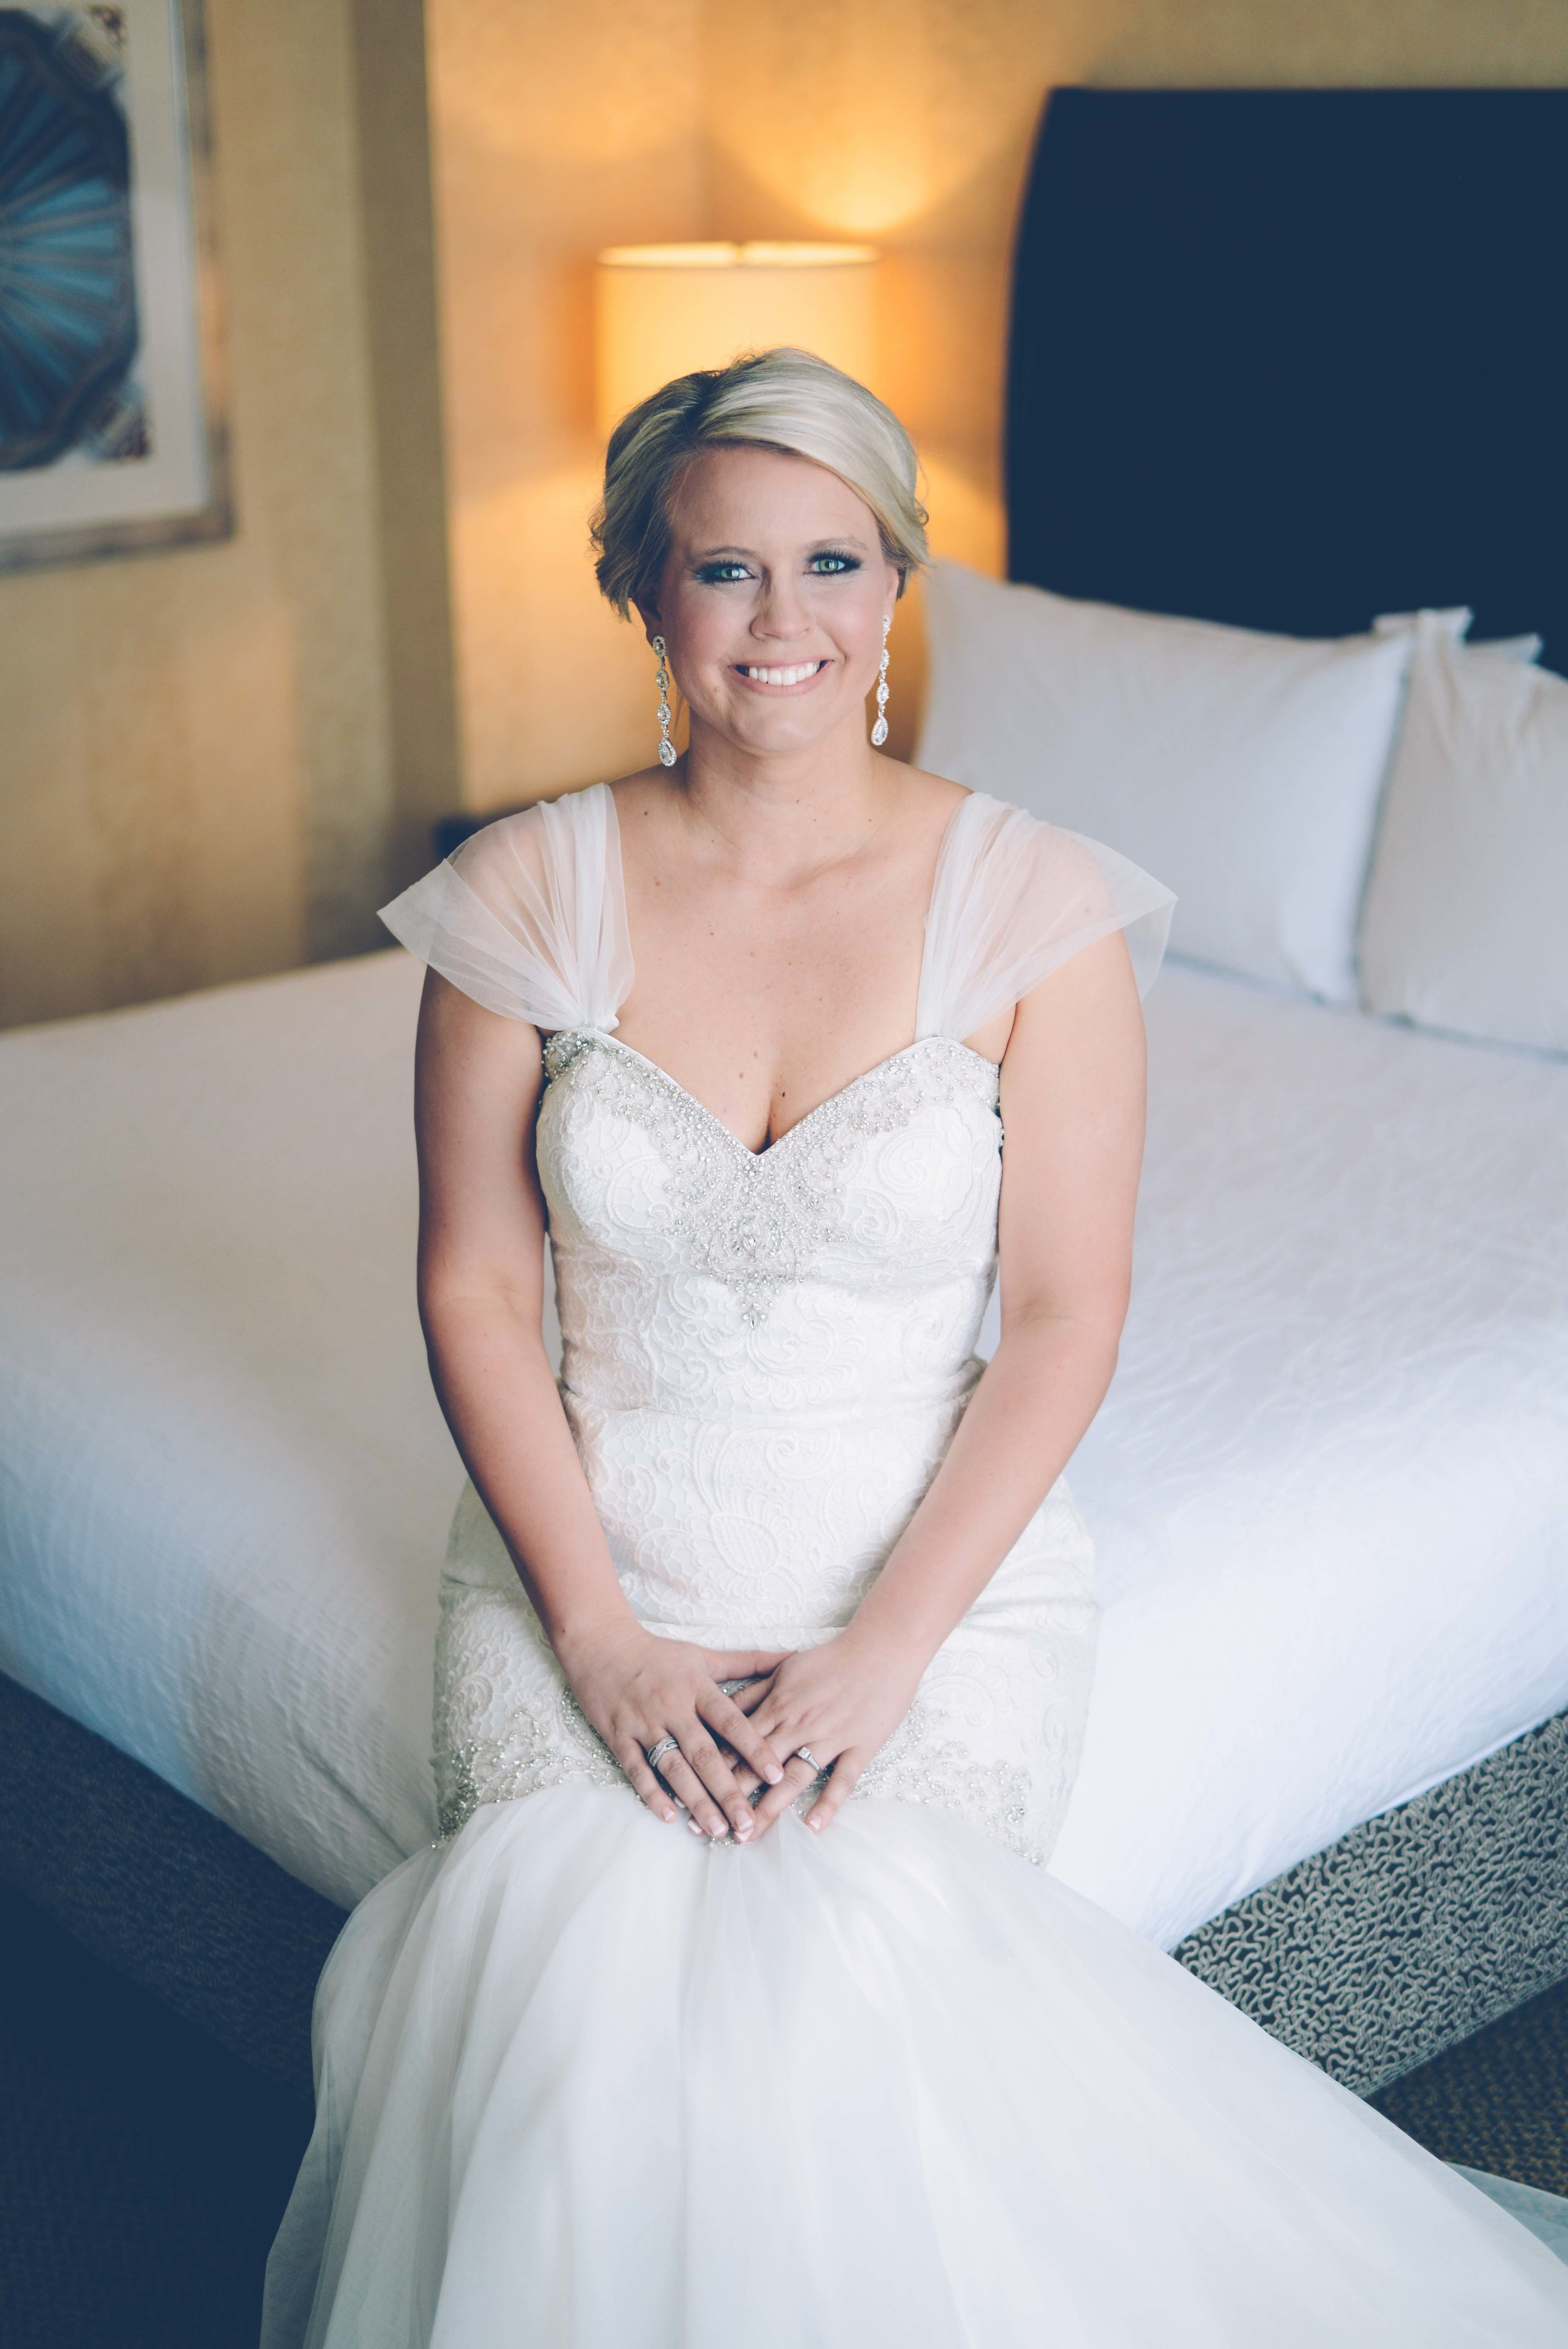 bridal portrait of bride sitting on hotel bed